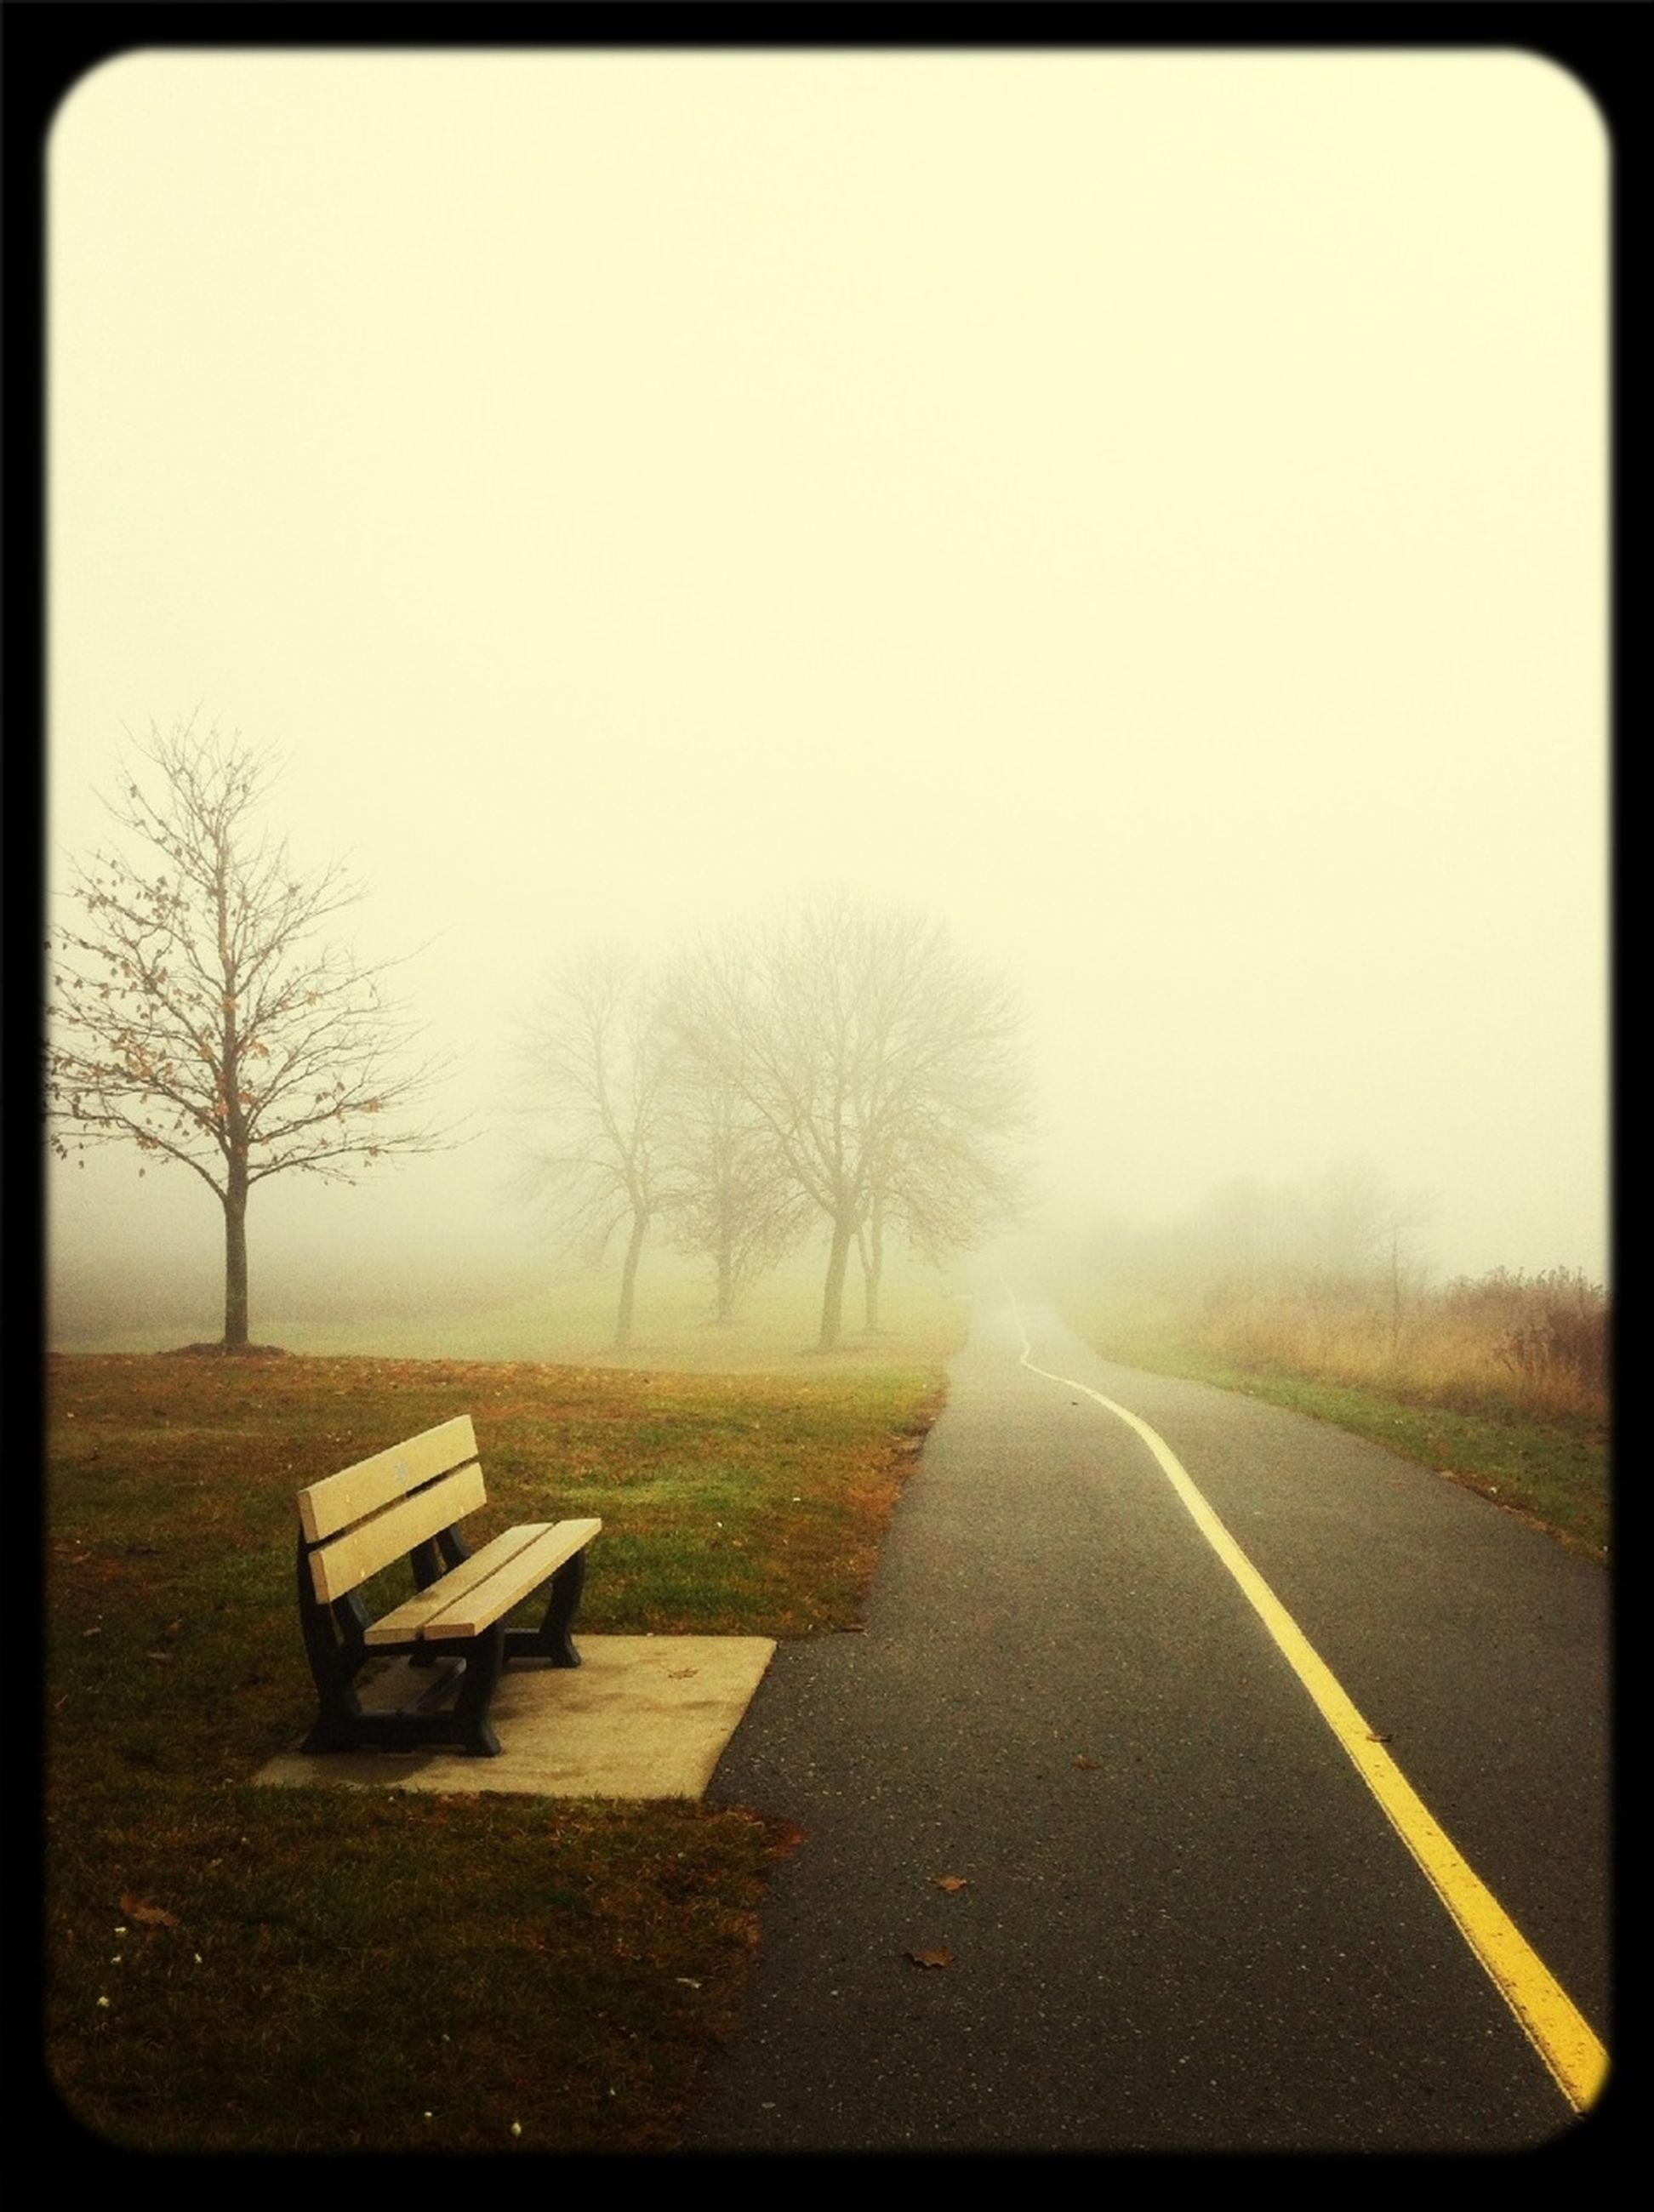 the way forward, transportation, diminishing perspective, road, tree, bare tree, vanishing point, tranquil scene, country road, tranquility, fog, transfer print, empty, auto post production filter, empty road, landscape, nature, field, road marking